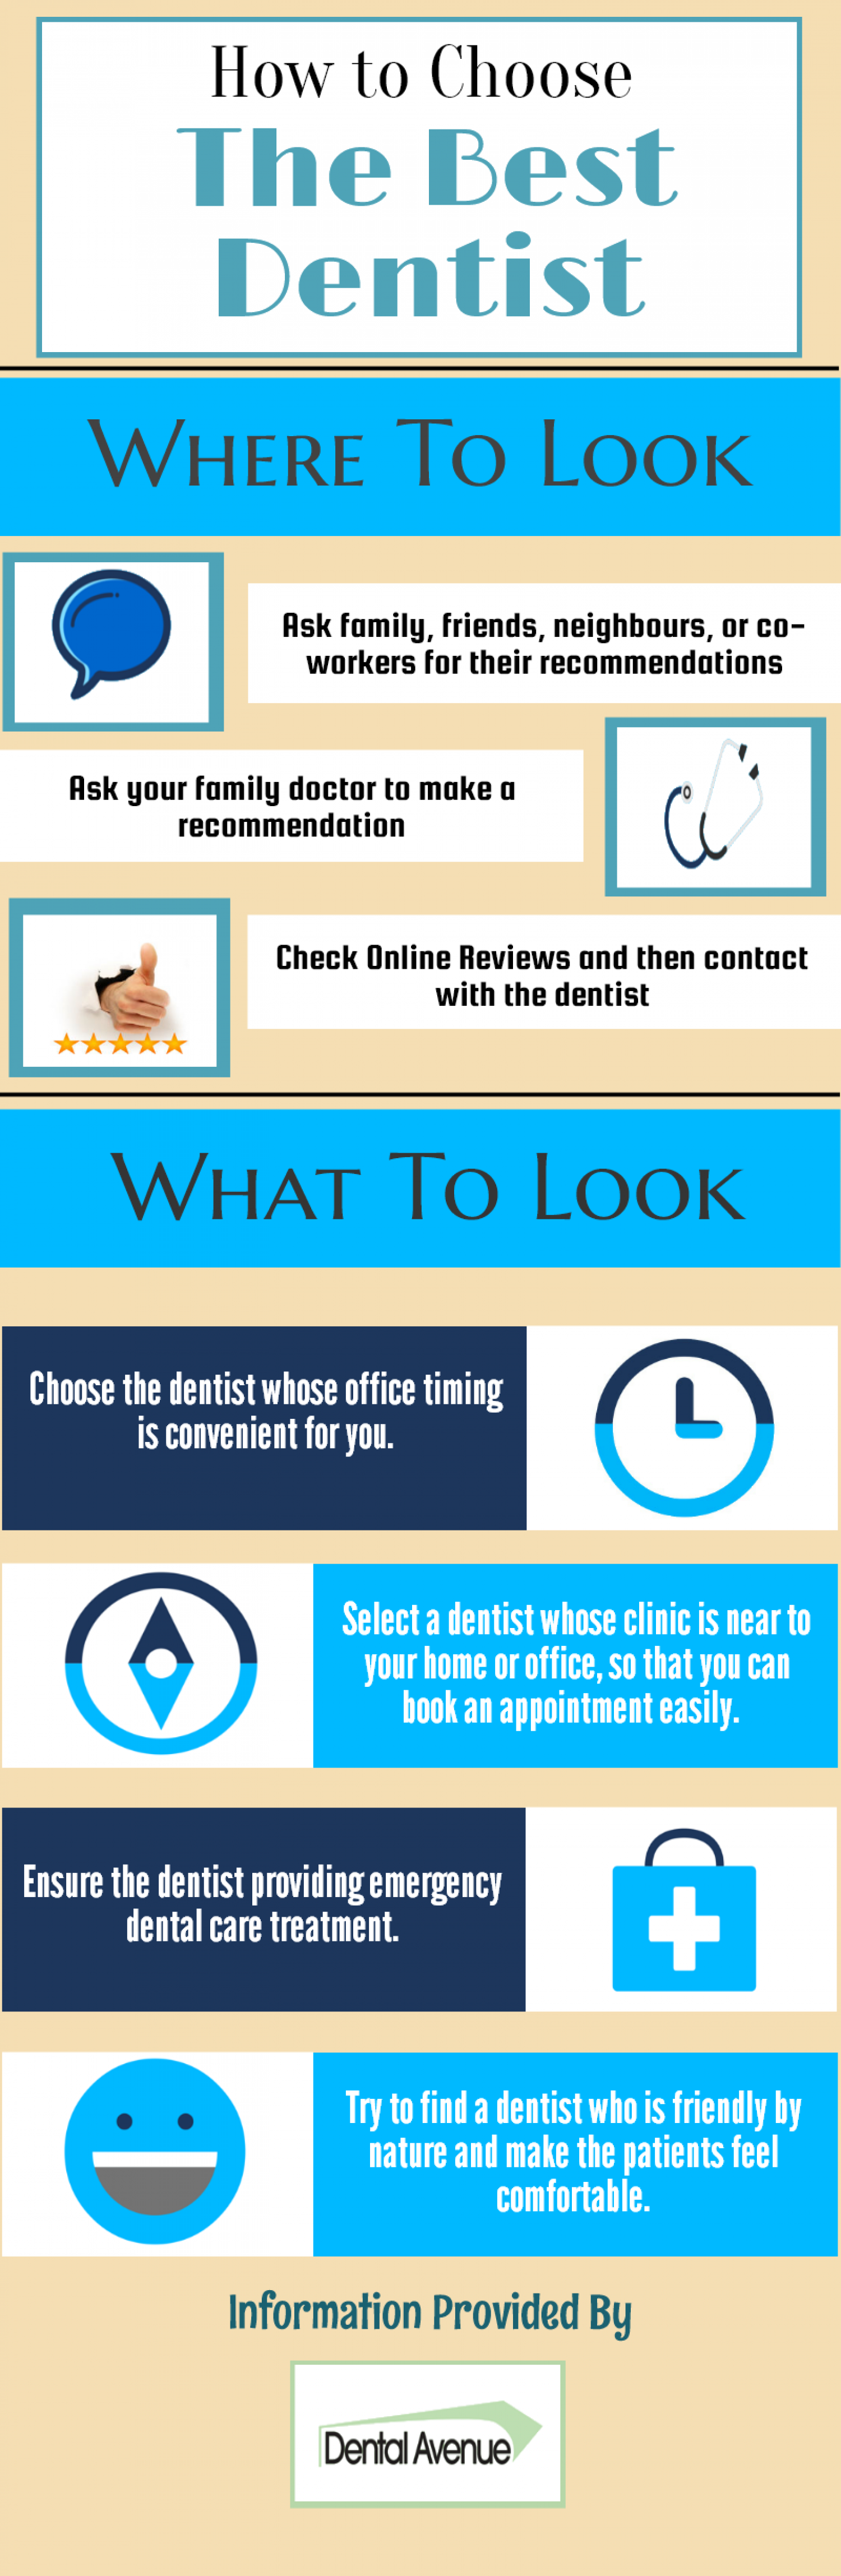 How To Choose The Best Dentist Infographic